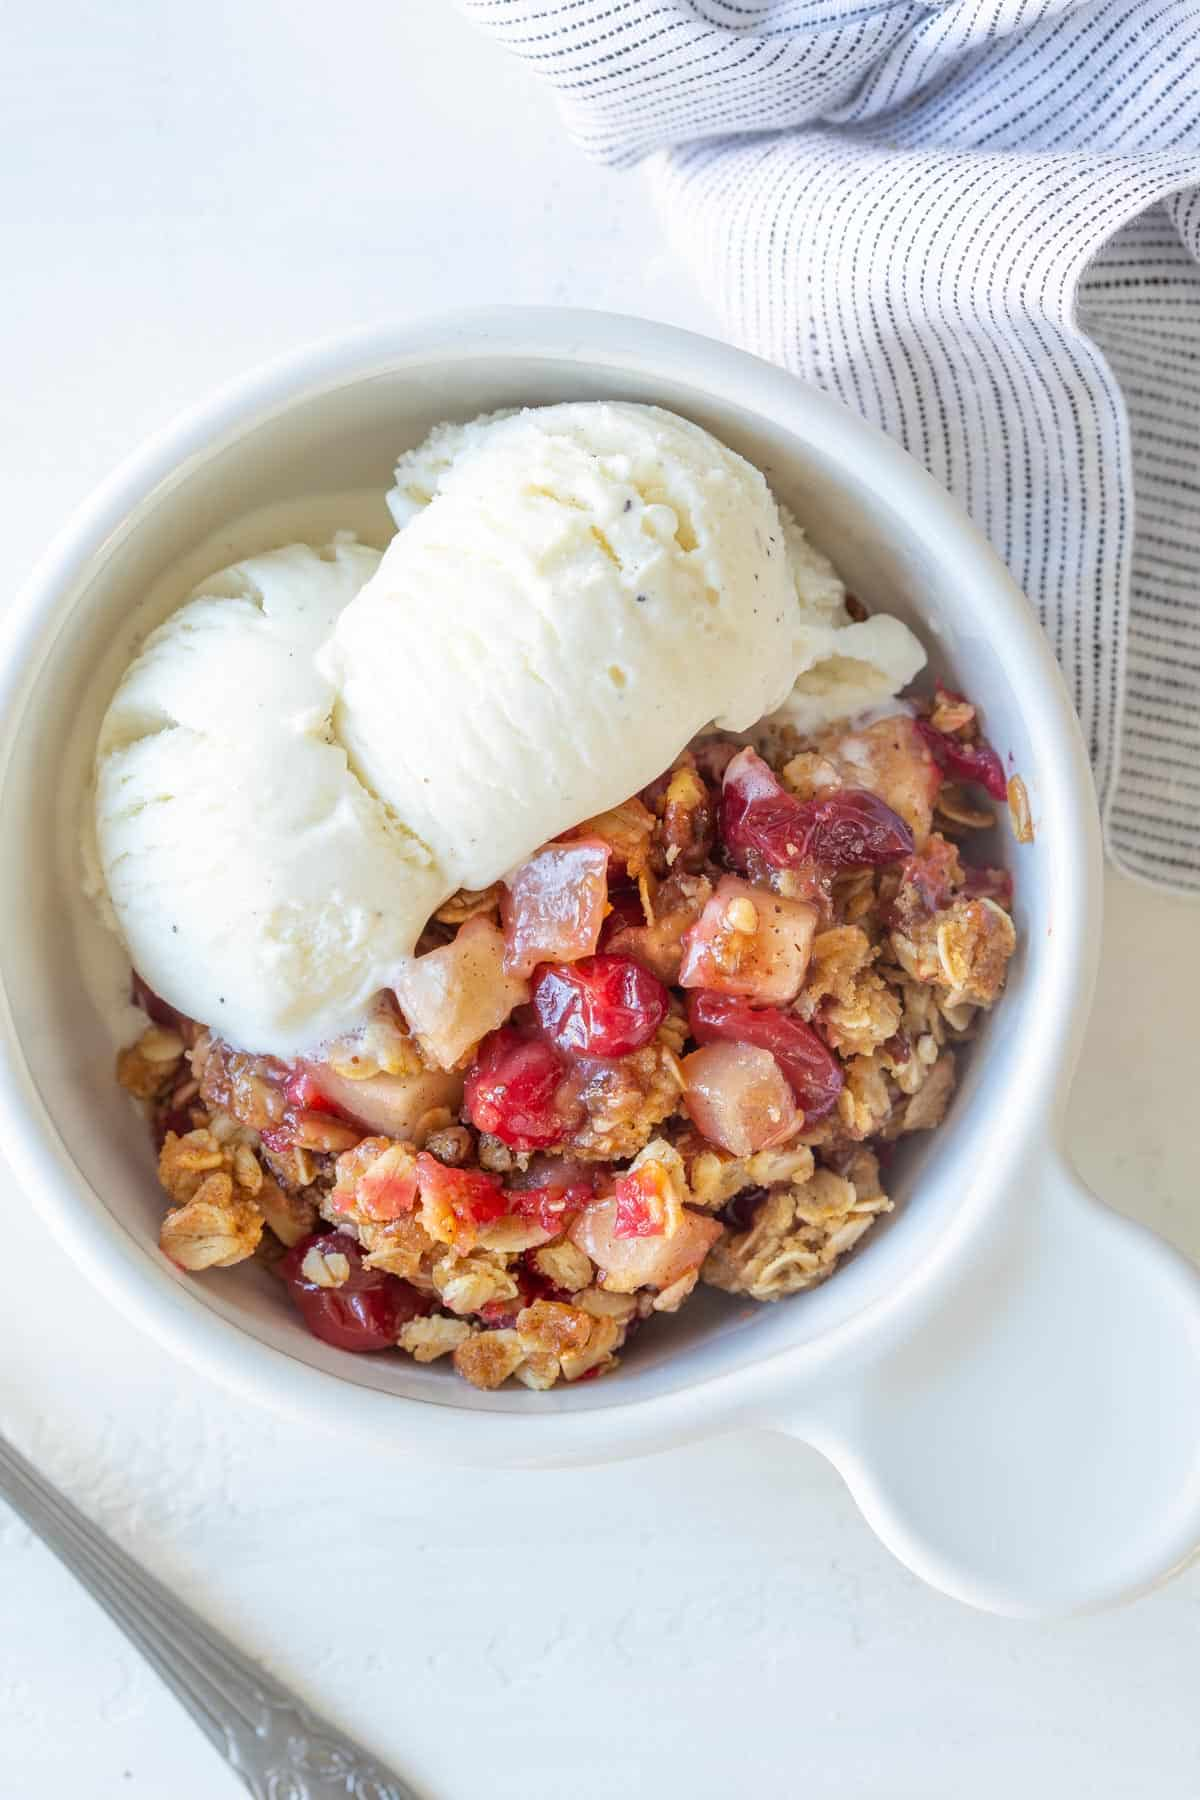 Overhead view of apple cranberry crisp in a white bowl with vanilla ice cream.